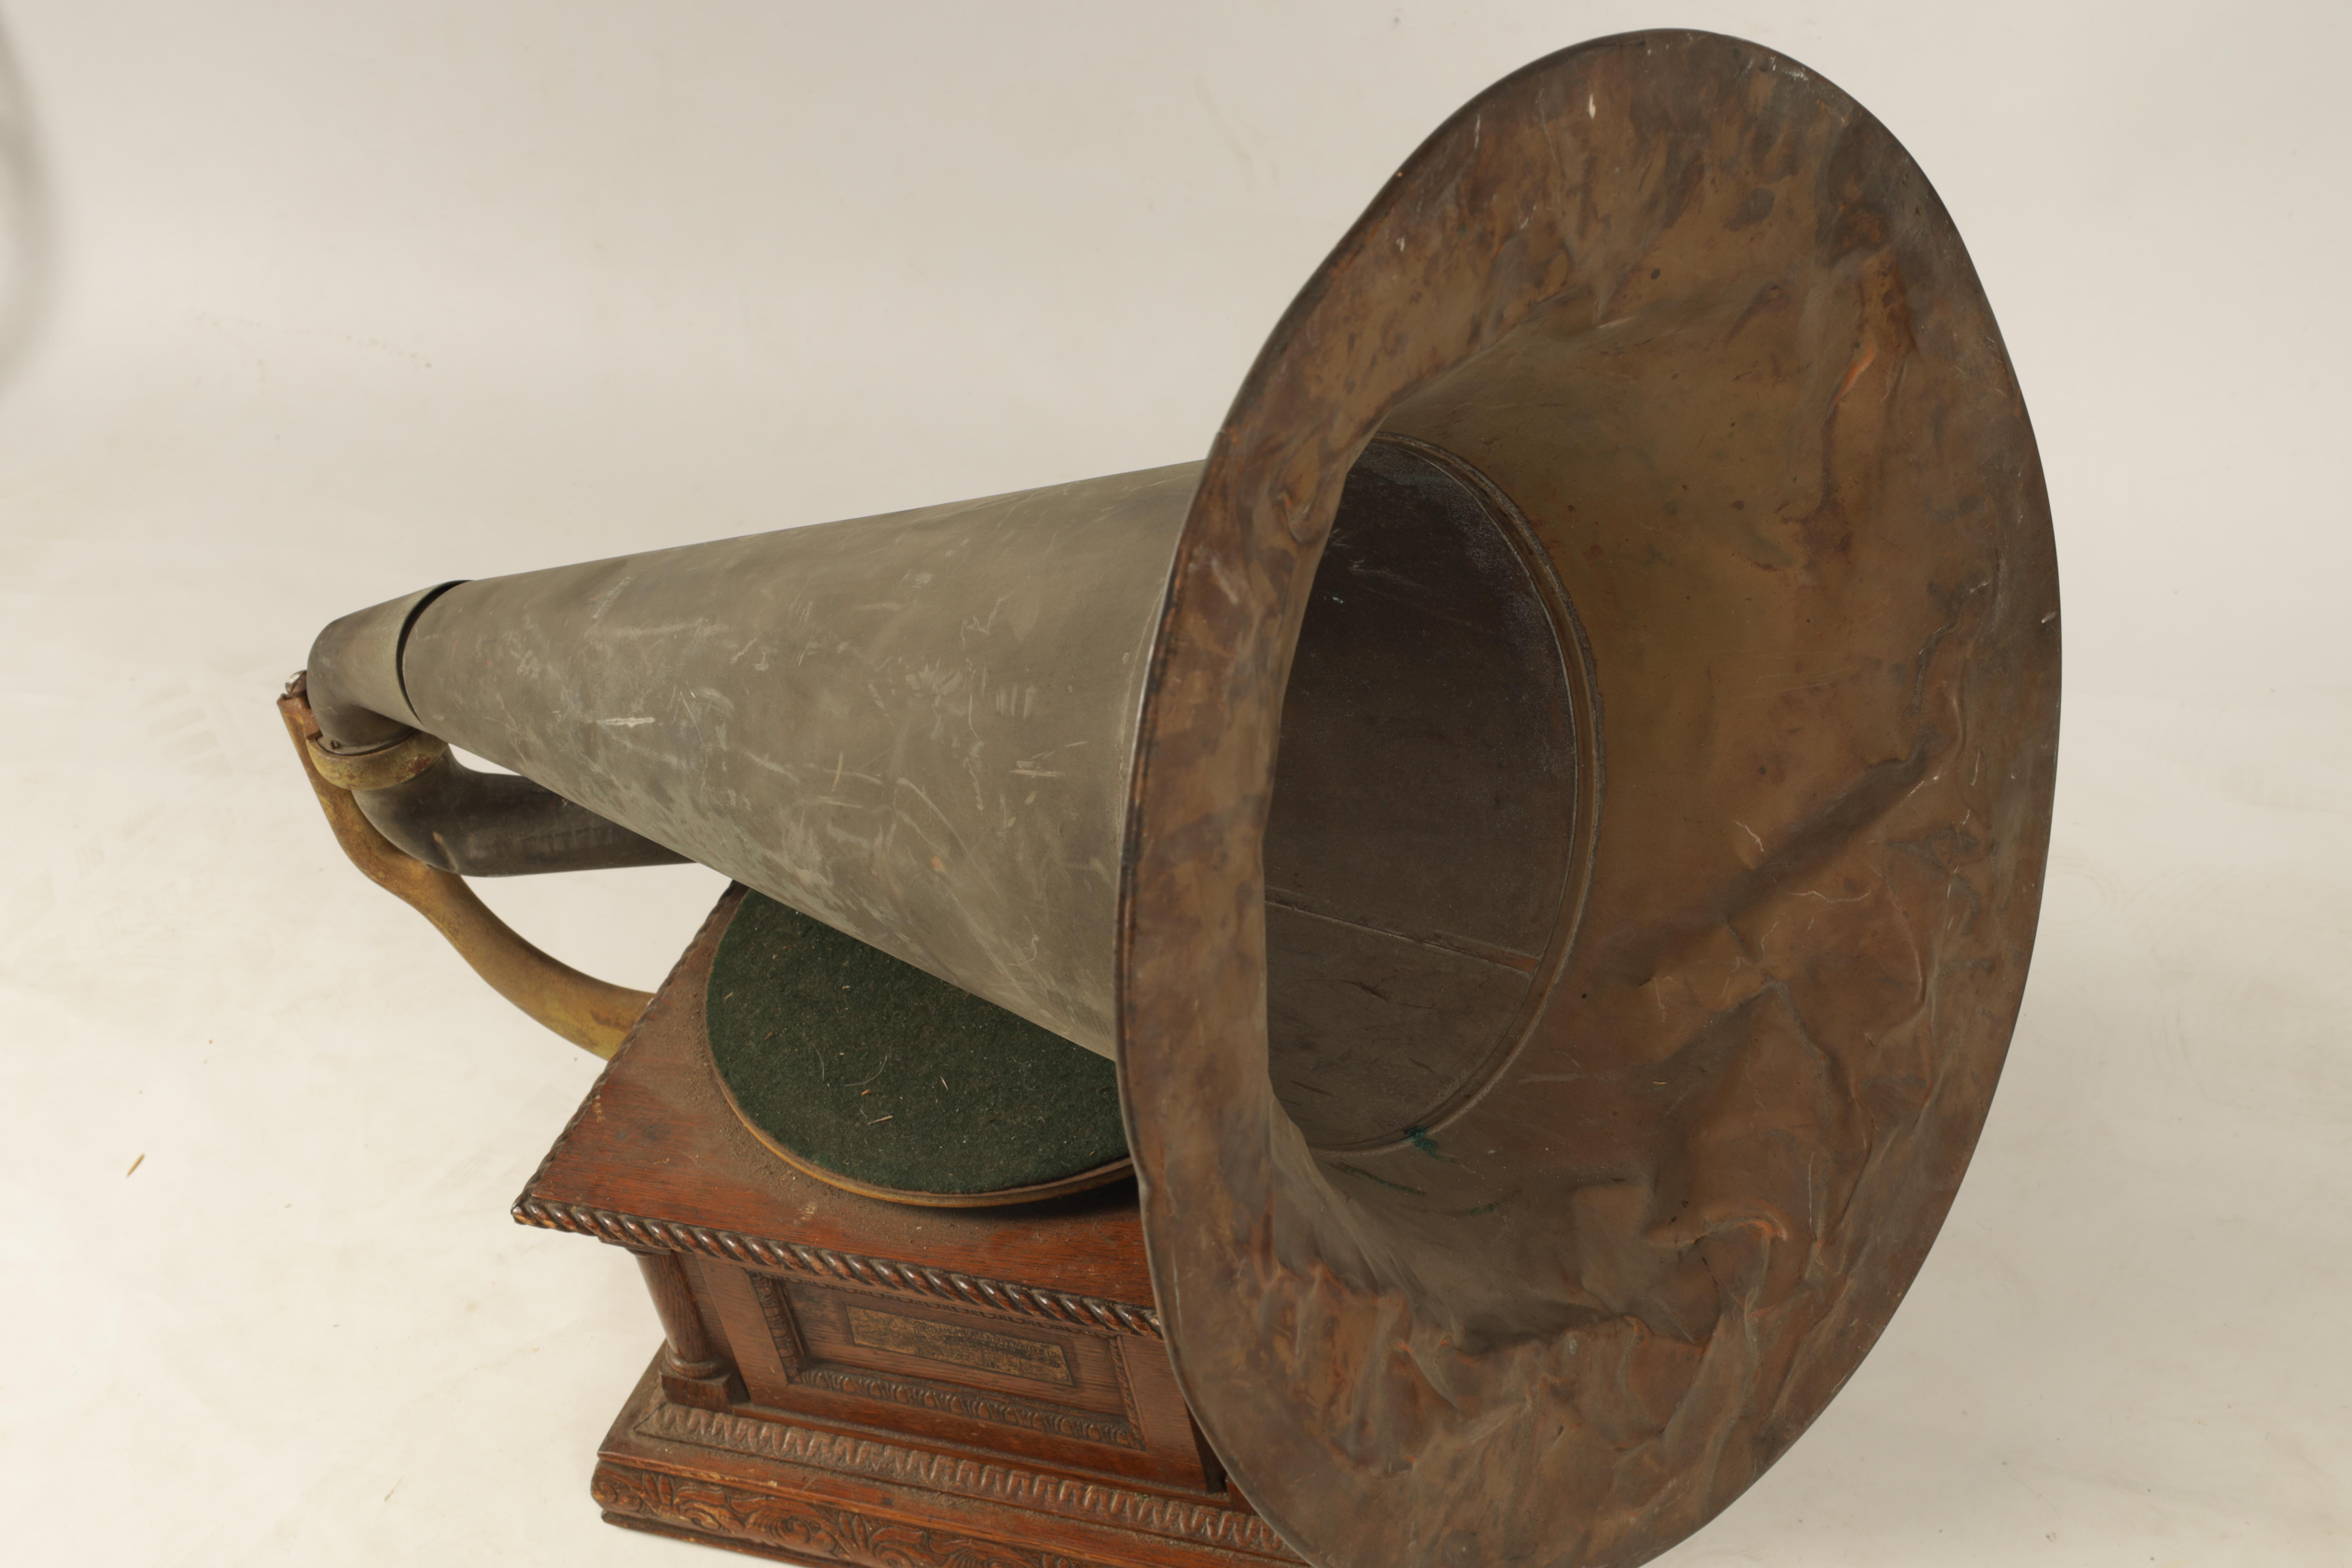 AN EARLY 20TH CENTURY OAK CASED HORN GRAMOPHONE, BY THE GRAMOPHONE & TYPEWRITER LTD having a - Image 5 of 8